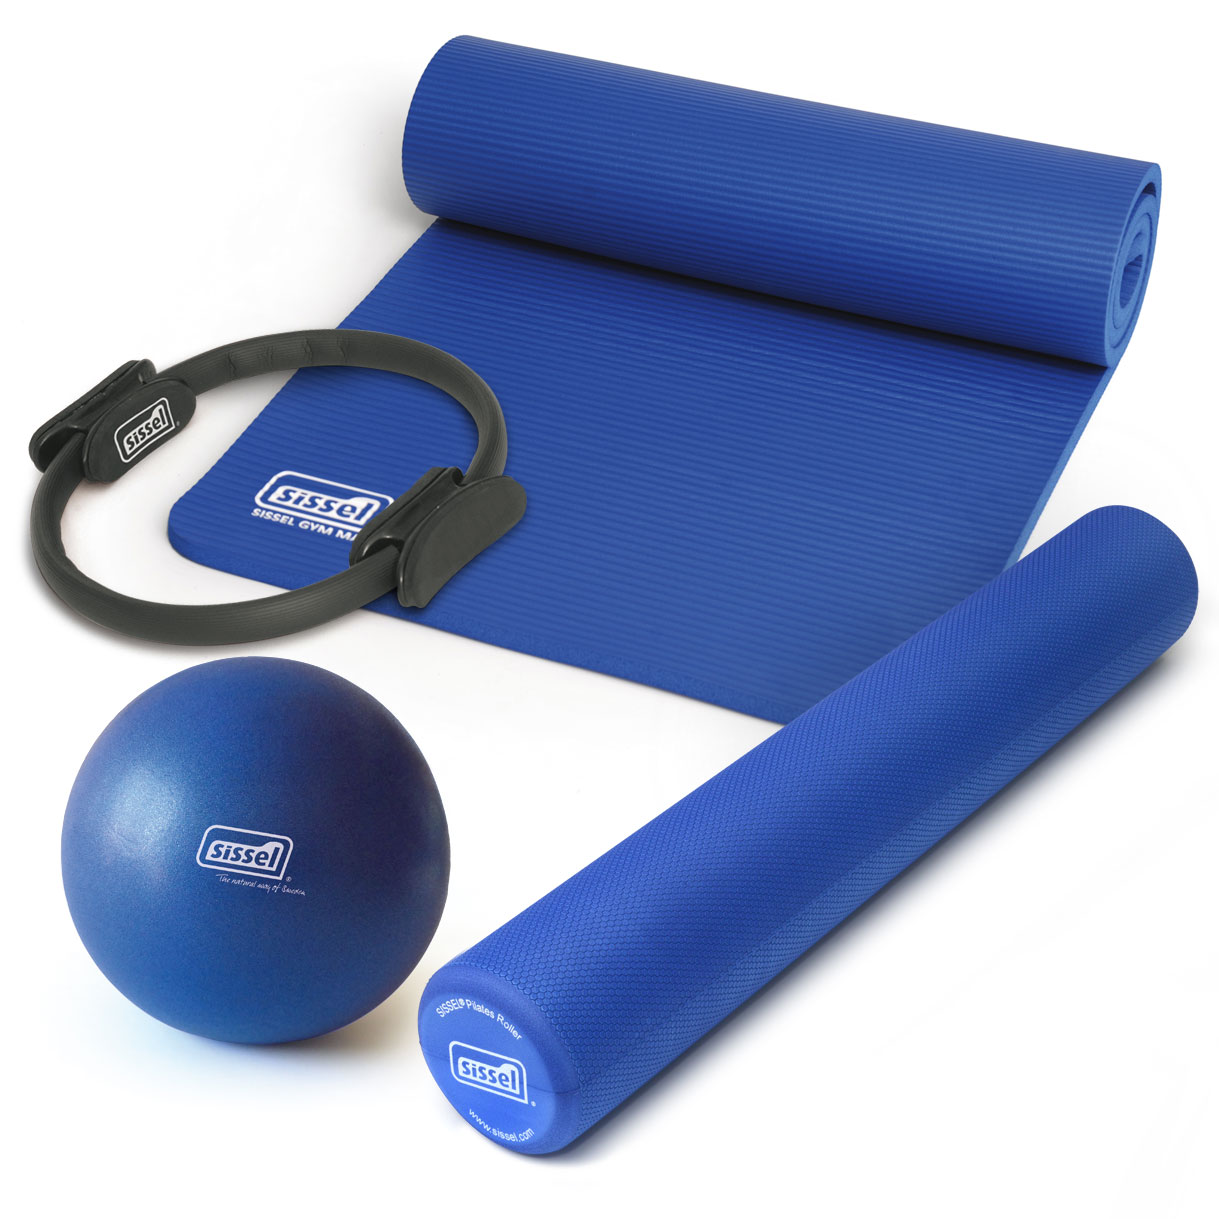 KIT PILATES CASA n°1 BLU: Circle, Soft Ball, Rullo e Materassino